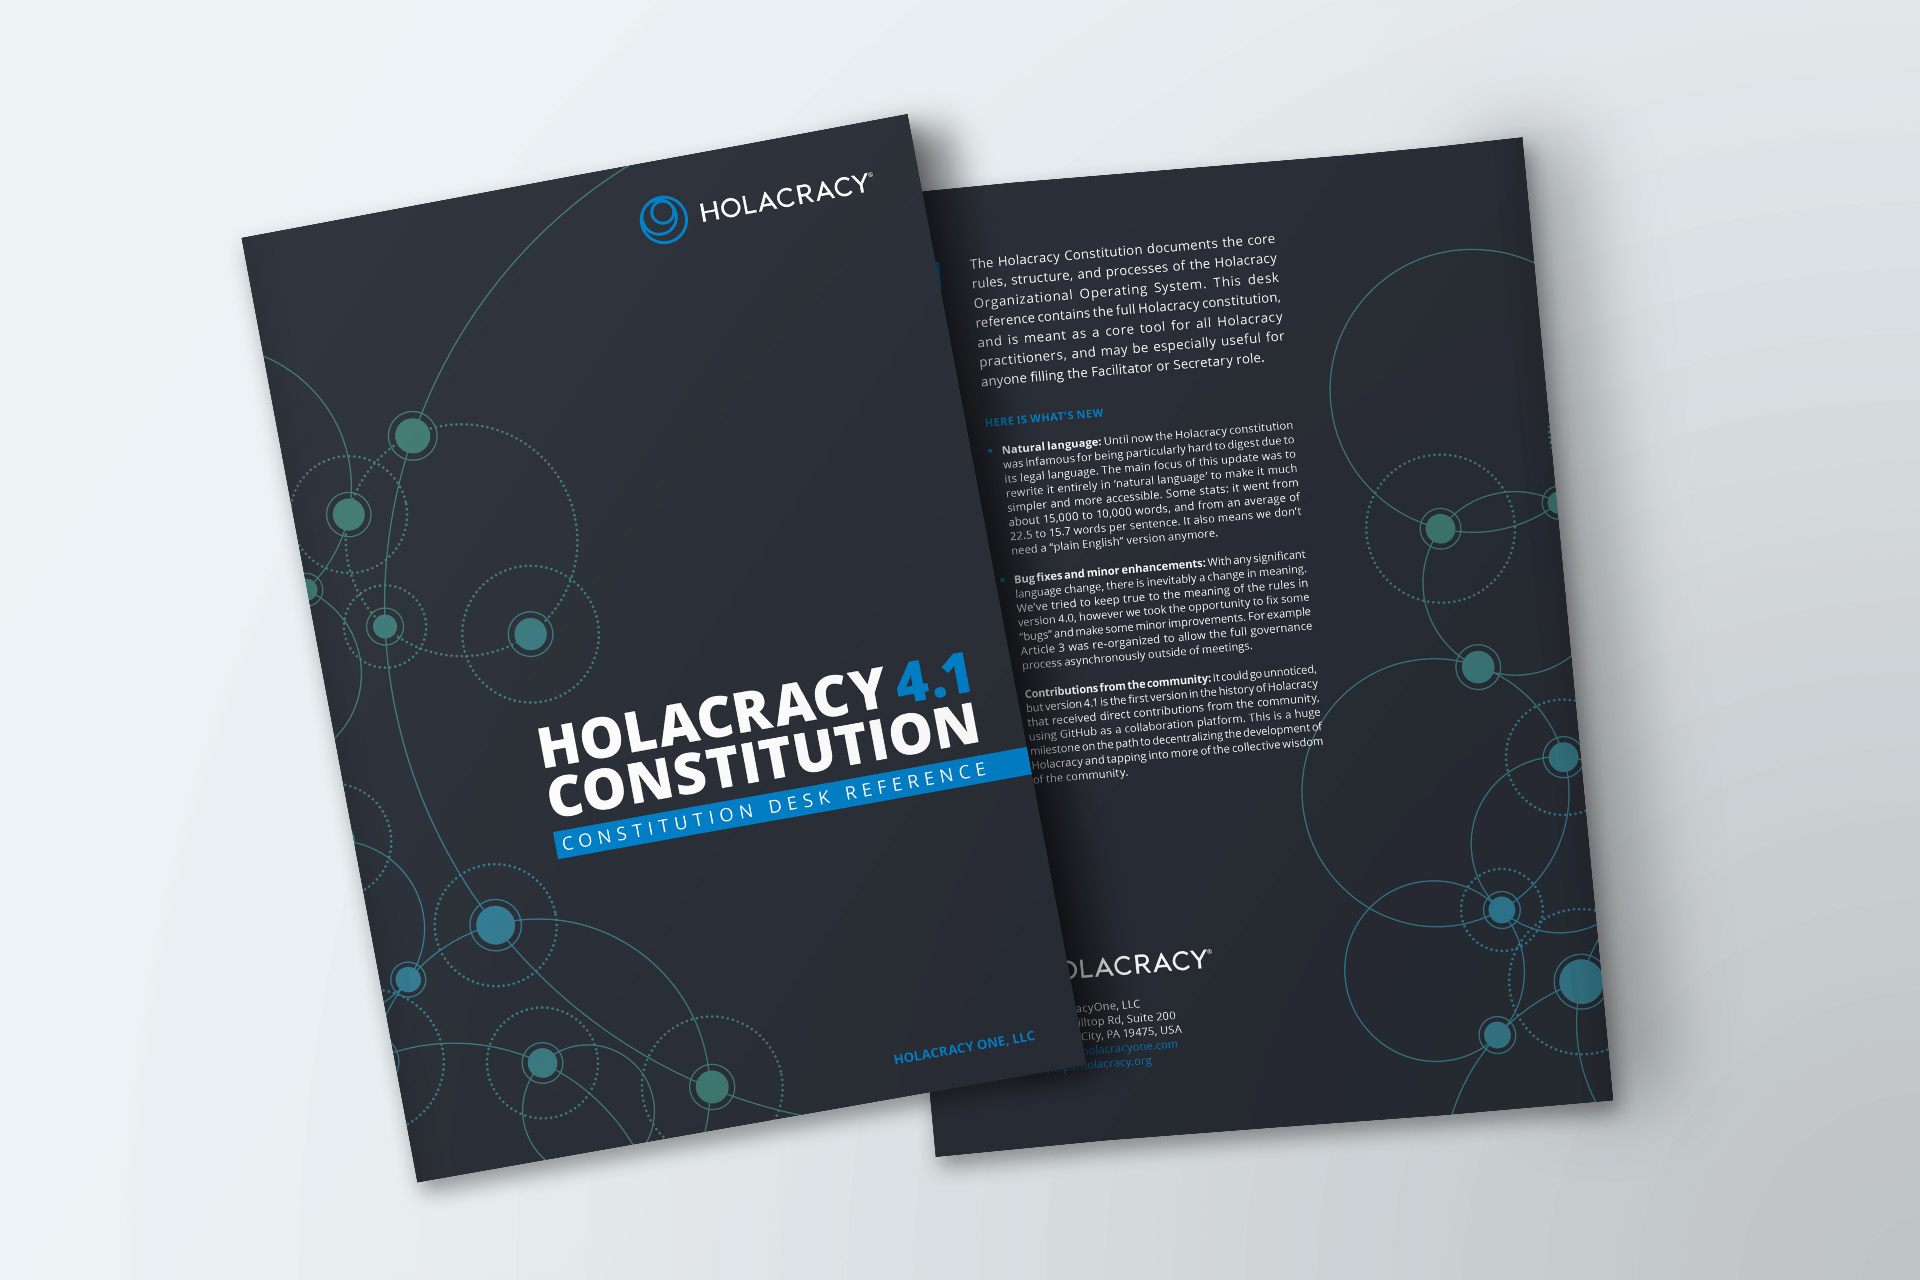 holacracy-constitution-cover